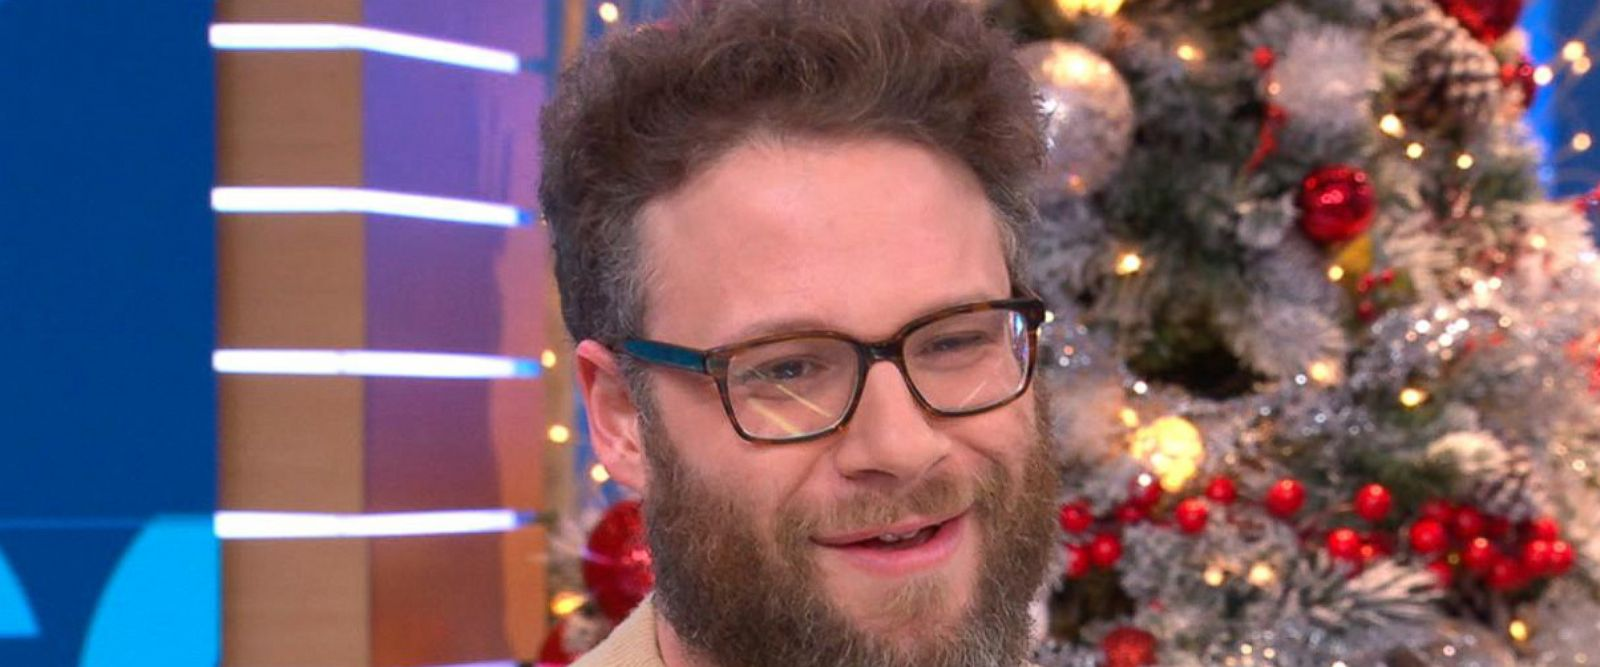 VIDEO: 'GMA' Hot List: Seth Rogen says James Franco stayed in character the entire time they made 'The Disaster Artist'